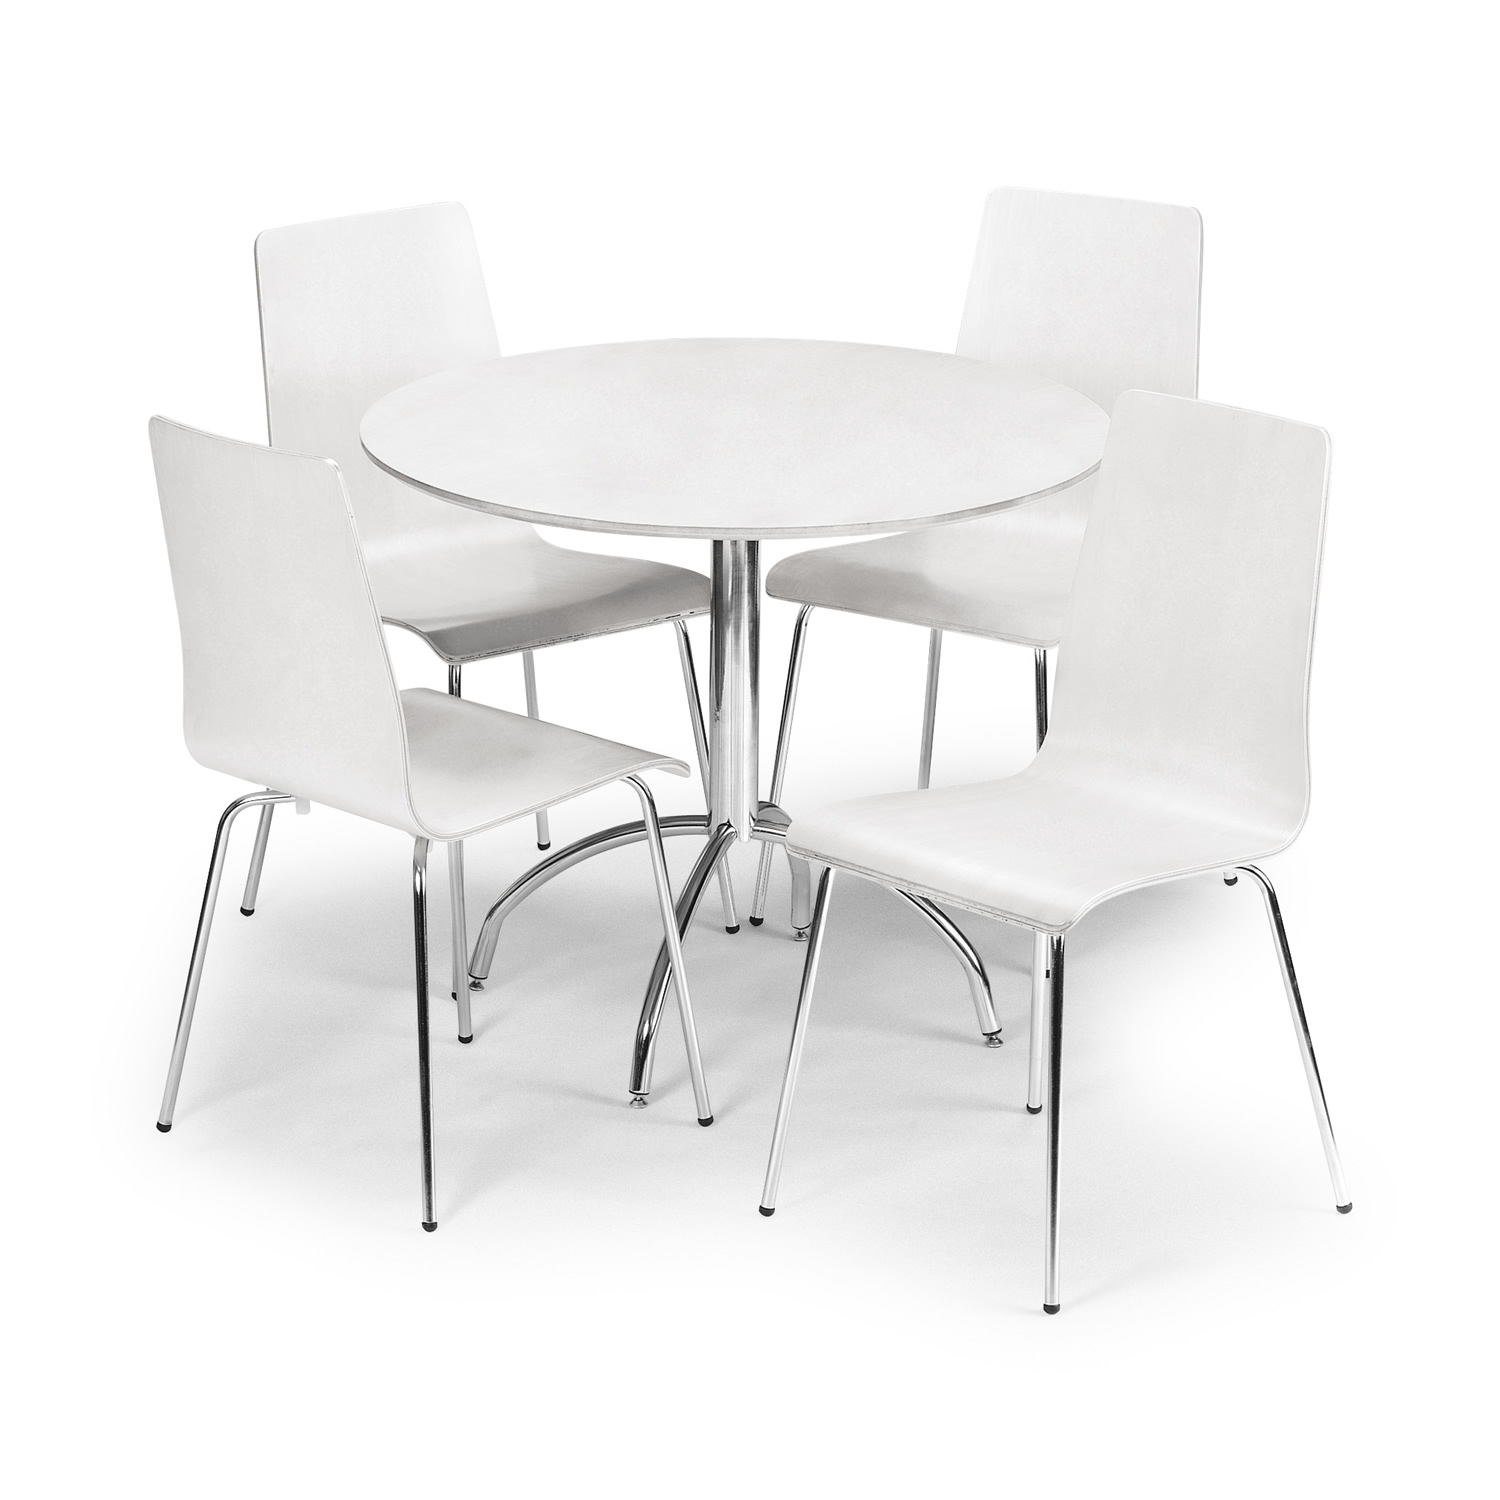 Round Dining Room Tables For 4 Beautiful White Round Kitchen Table And Chairs Homesfeed